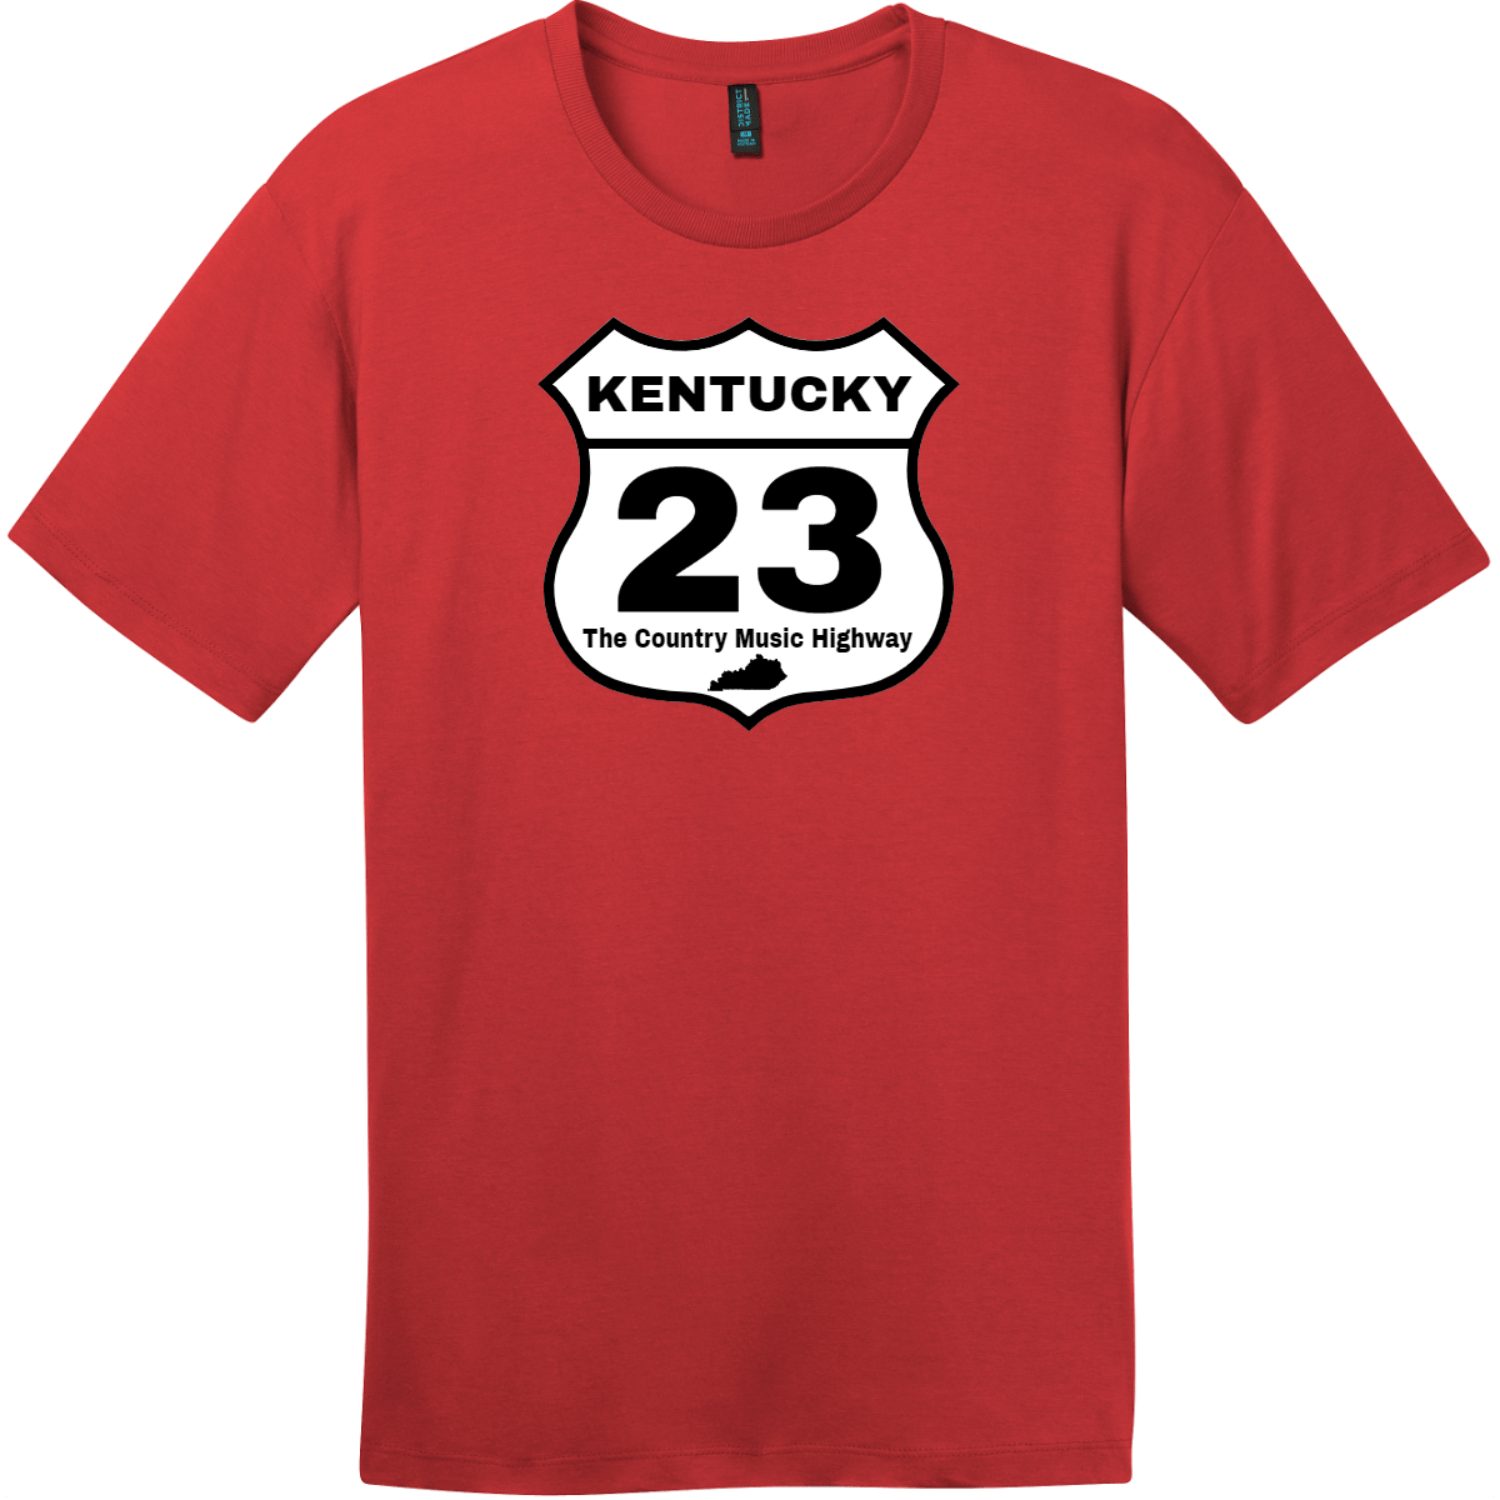 Kentucky 23 Country Music Highway T-Shirt Classic Red District Perfect Weight Tee DT104